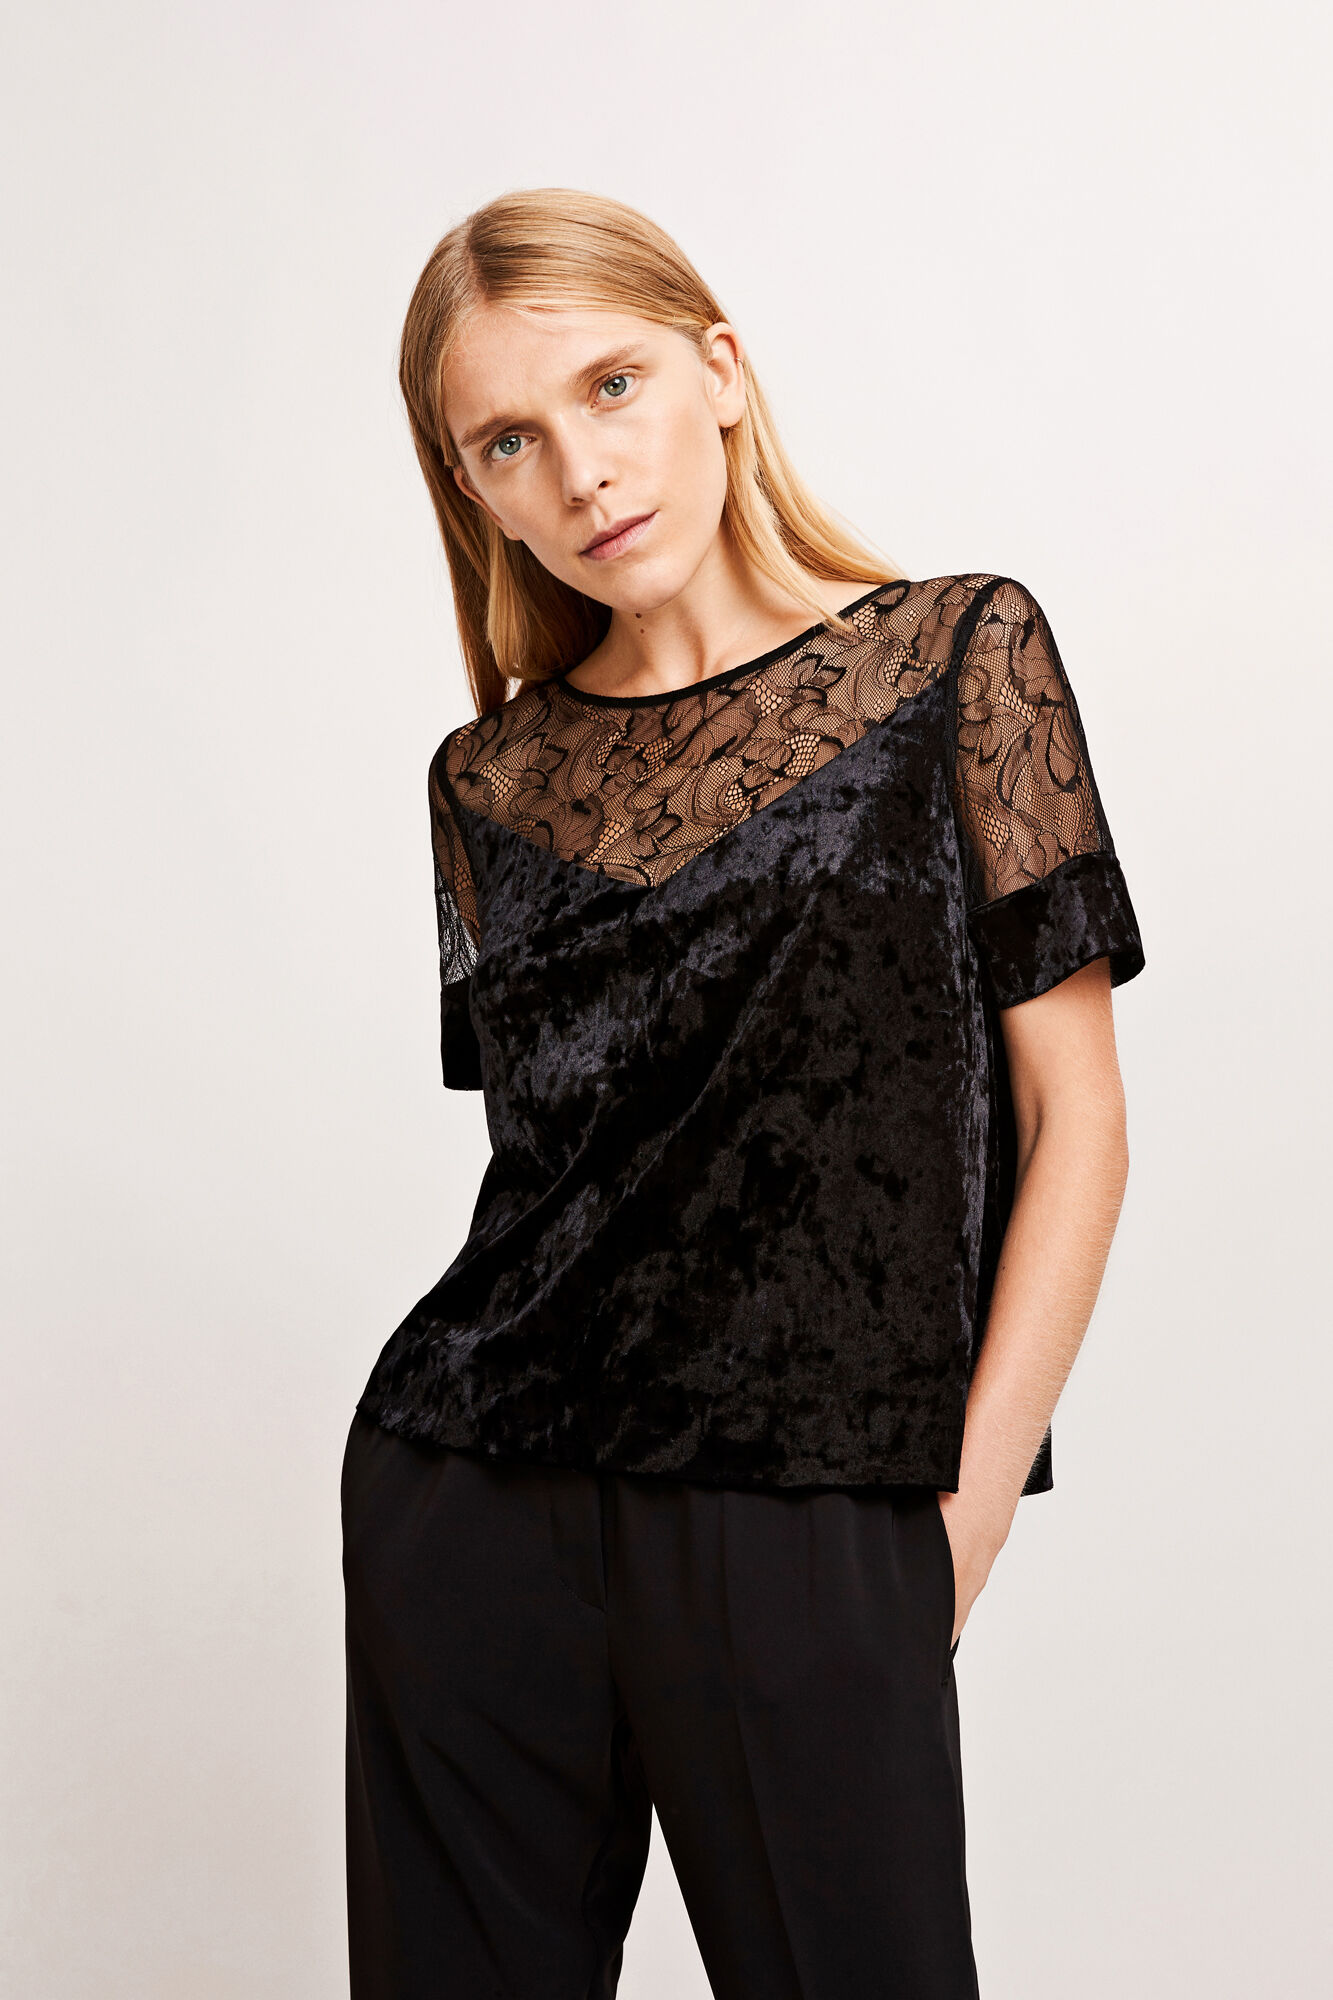 Biaf lace ss 7551